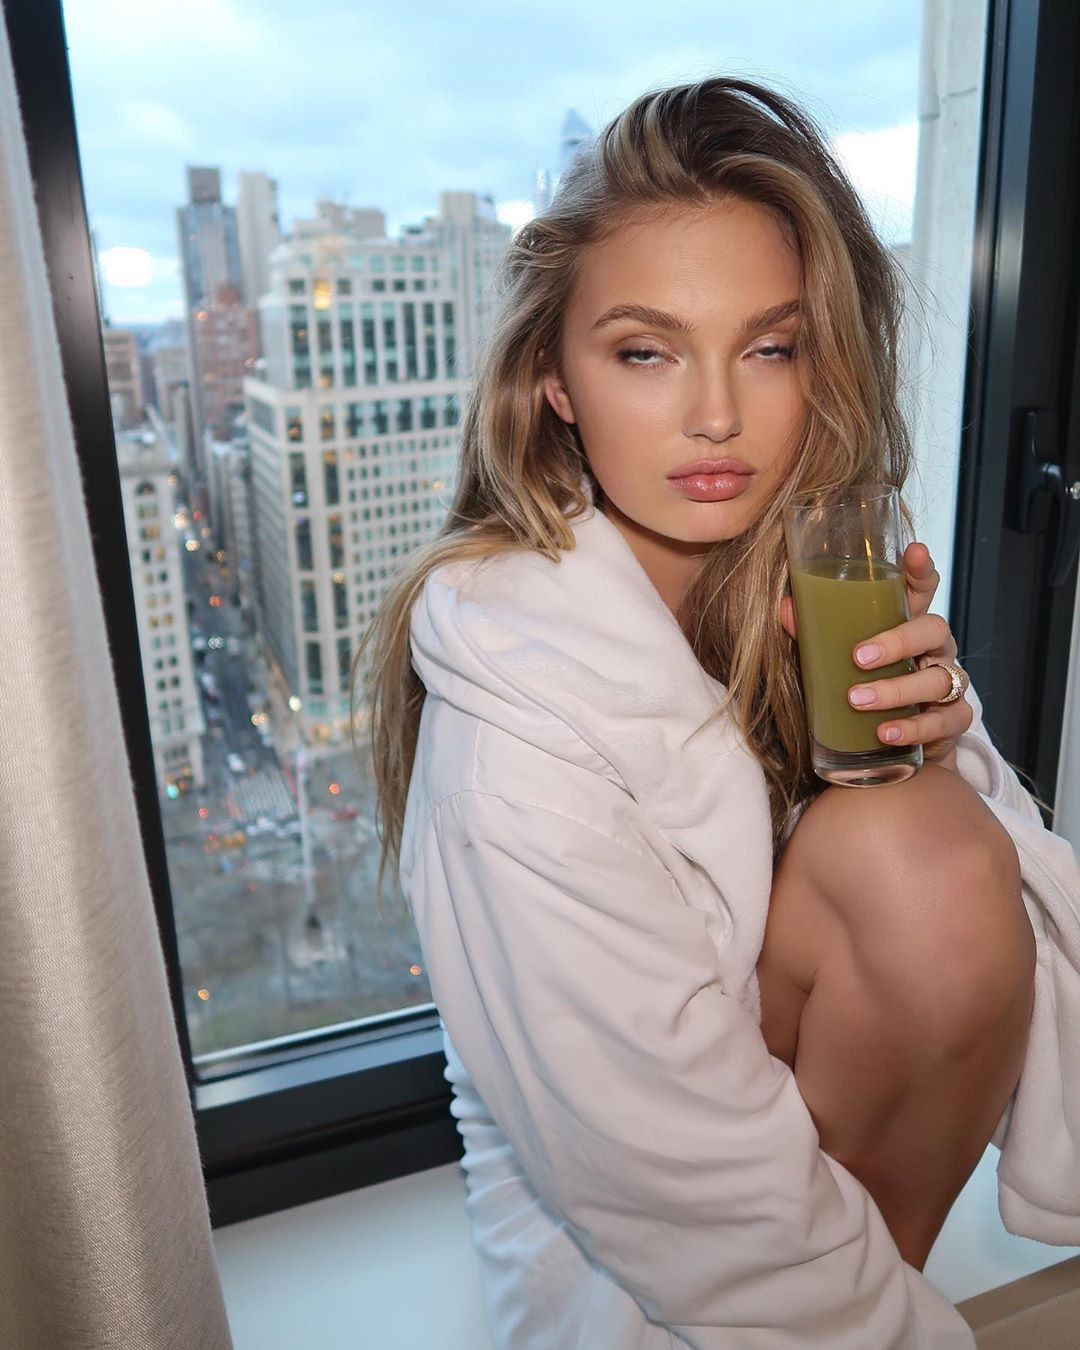 Romee Strijd beautiful girls pictures, blond hairstyle, Natural Lips